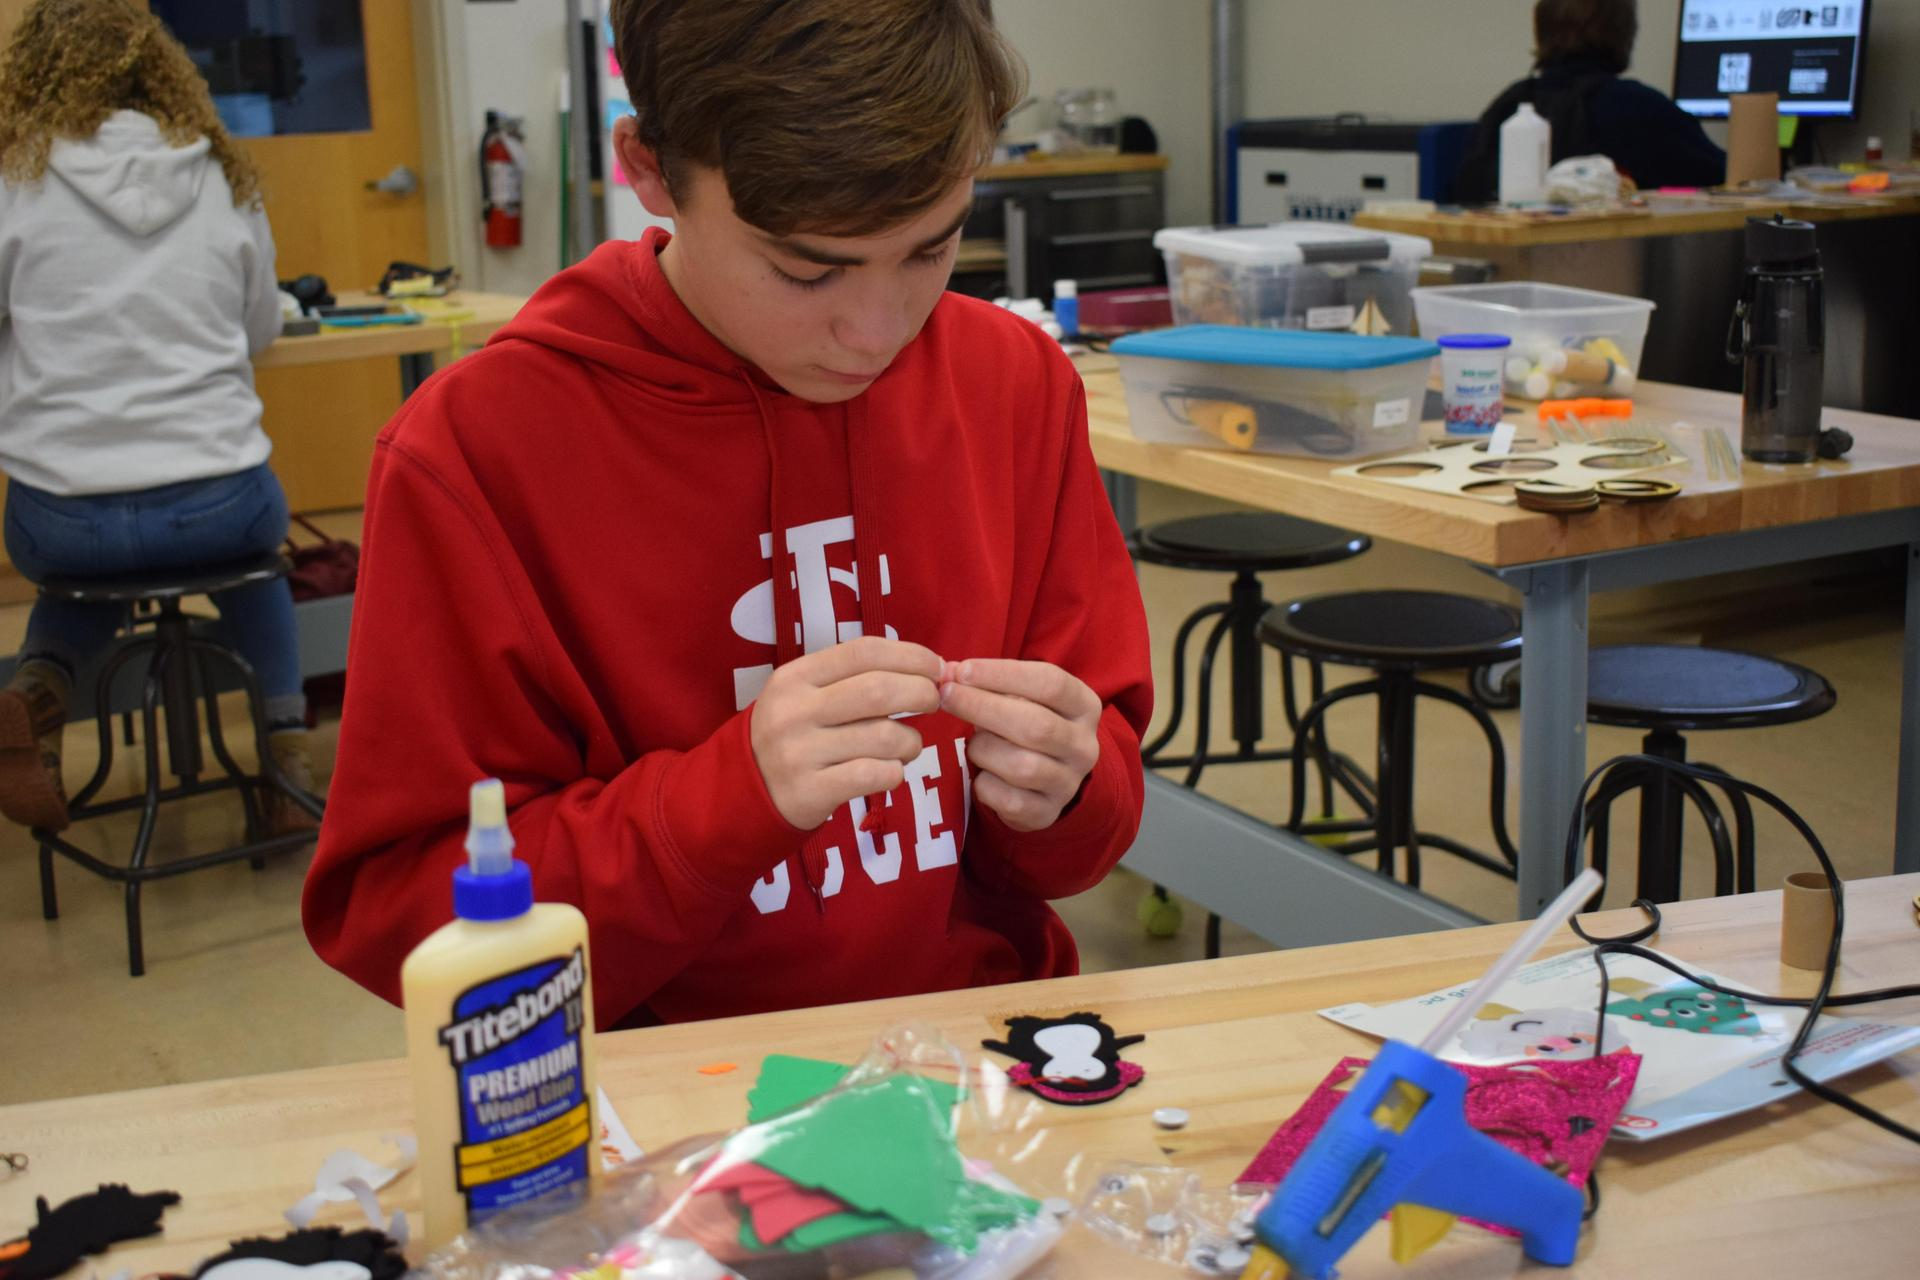 Student looking at his hands while he puts something together. He is wearing a red sweatshirt and jeans and sitting in a classroom.